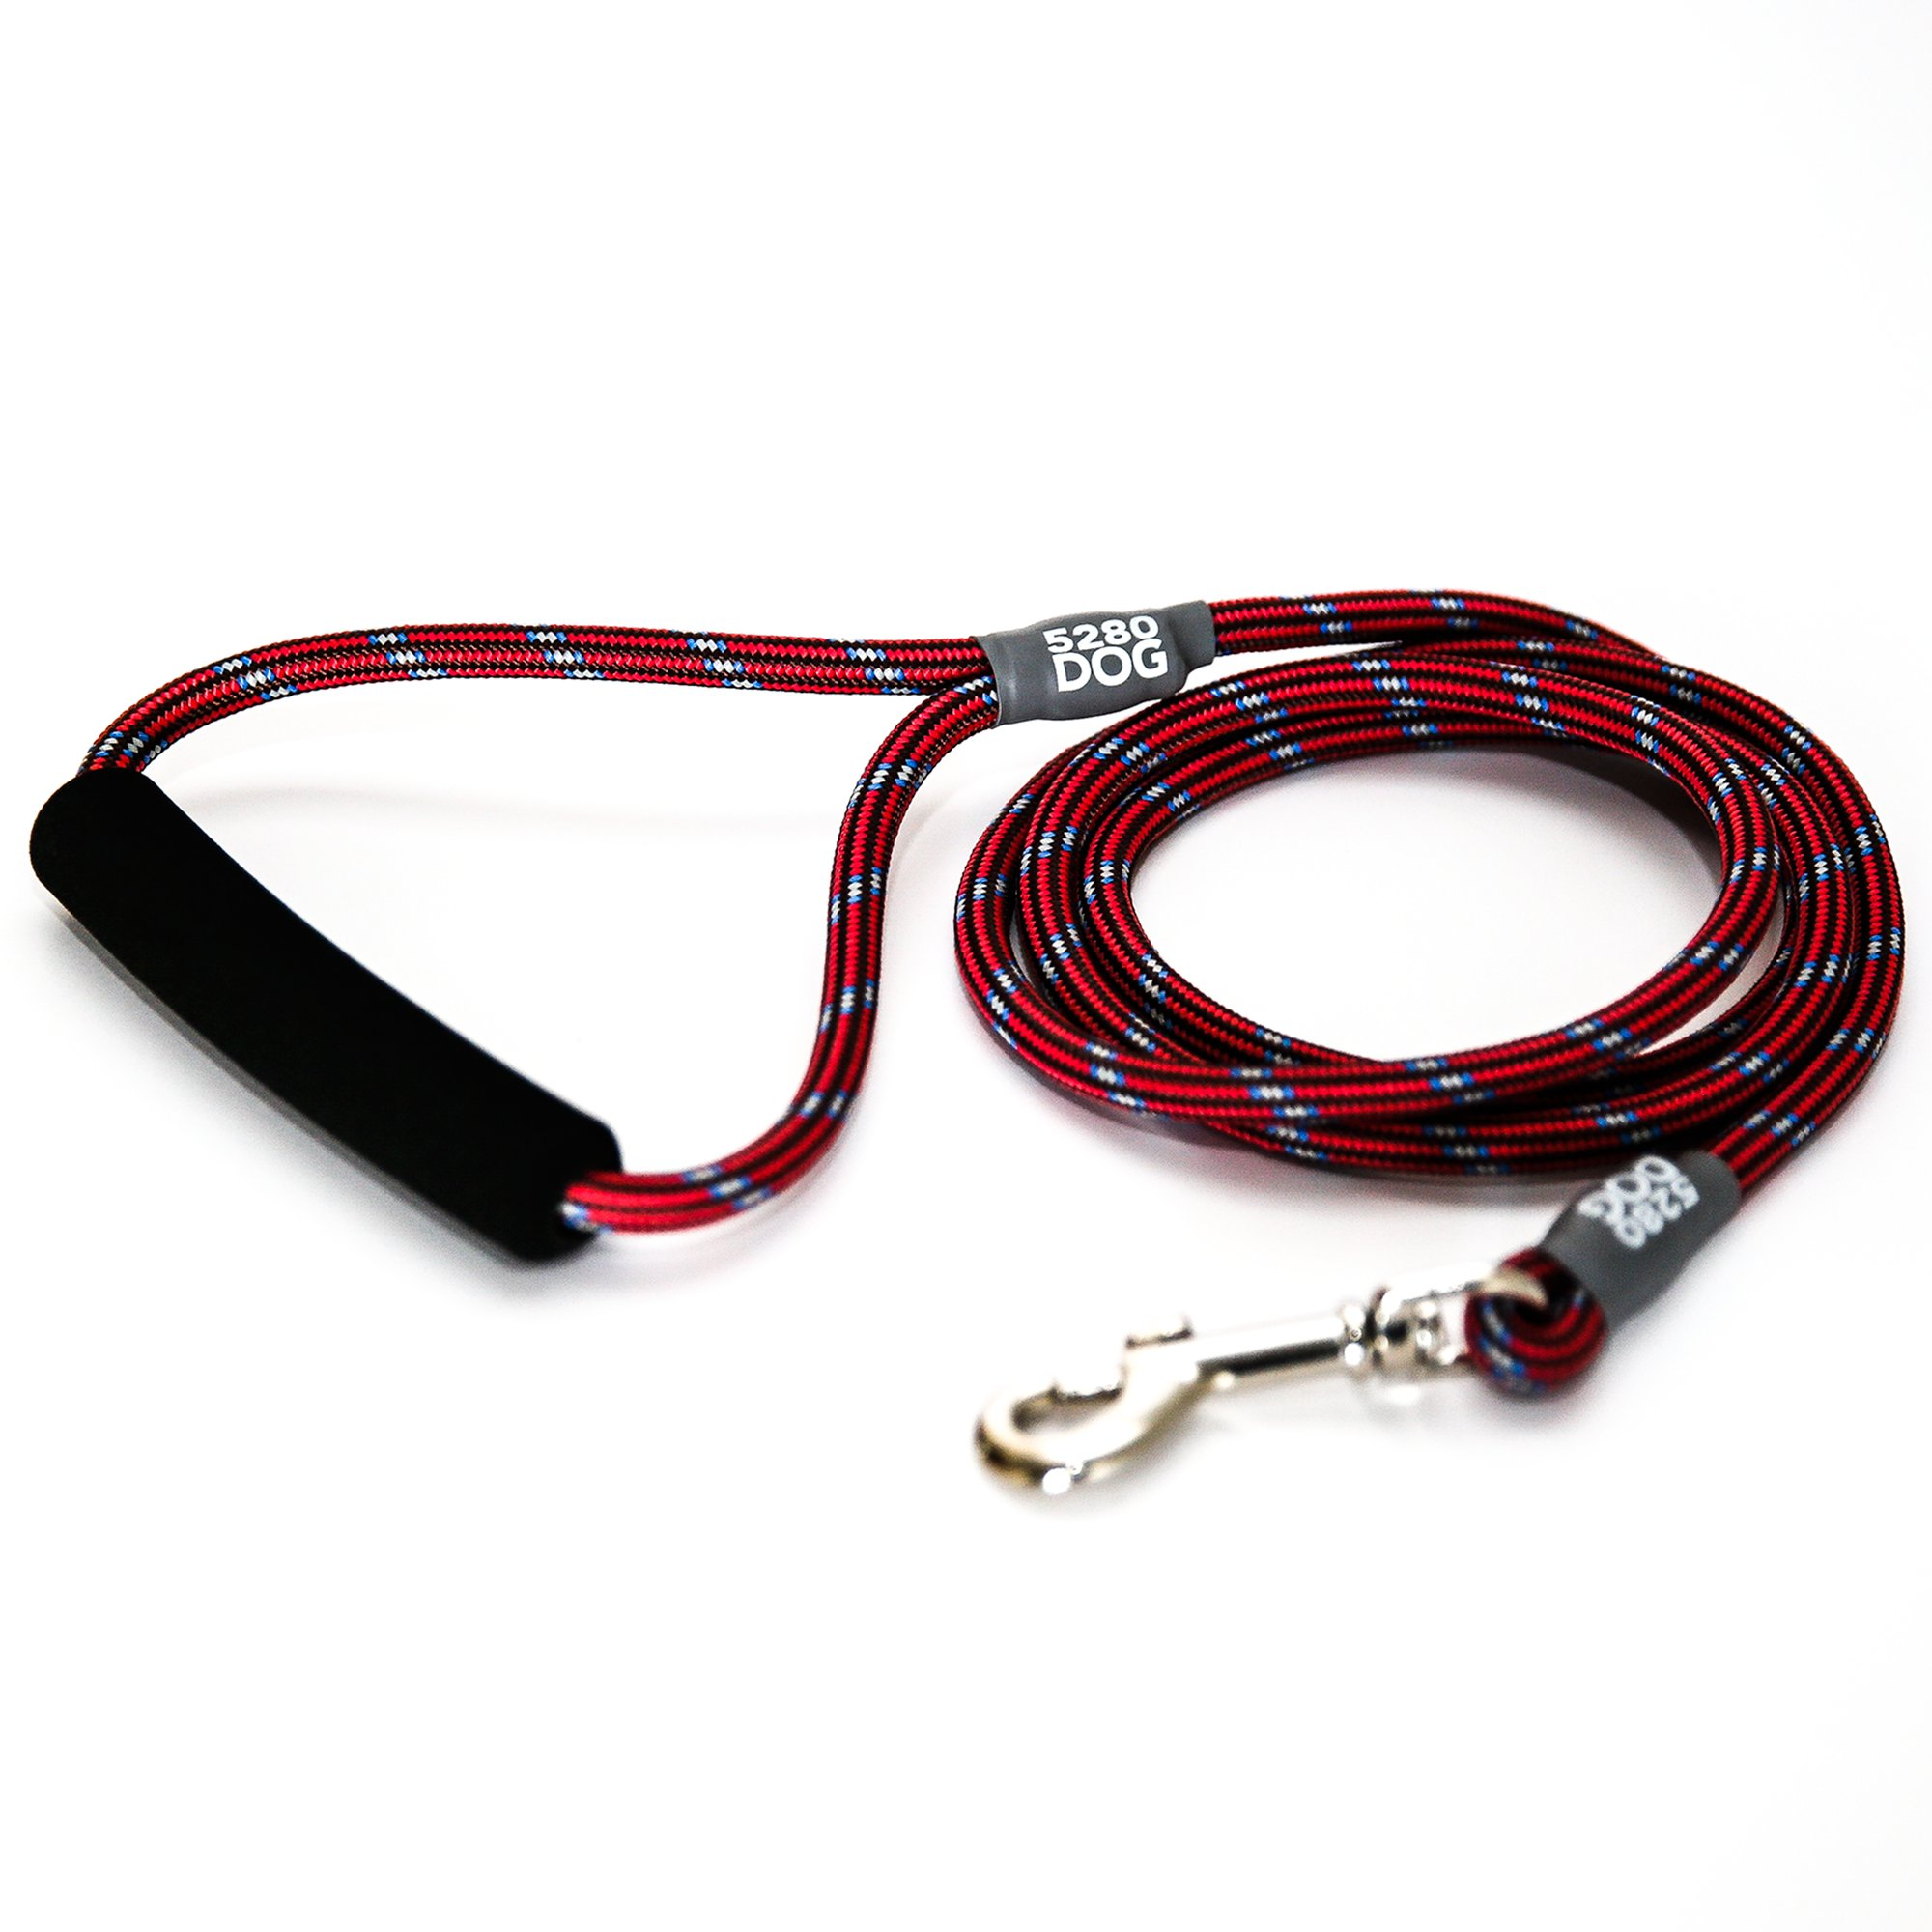 5280DOG Red Braided Rope Leash, Medium 5'